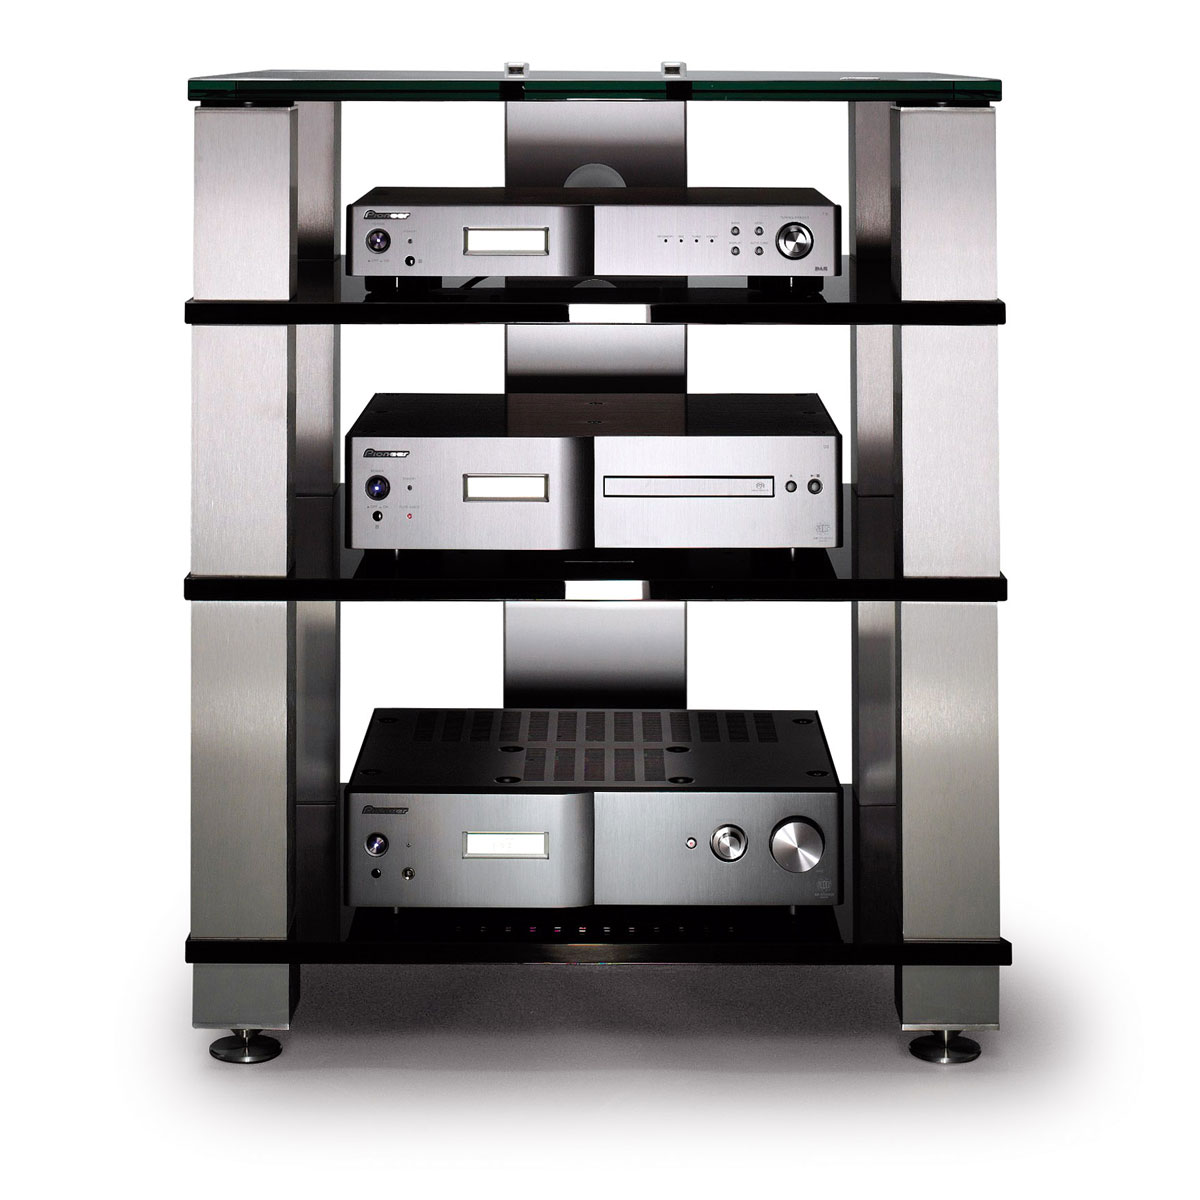 Mueble Hi Fi Hifi Möbel Phonomöbel Hifi Racks Hifi Regale Audio